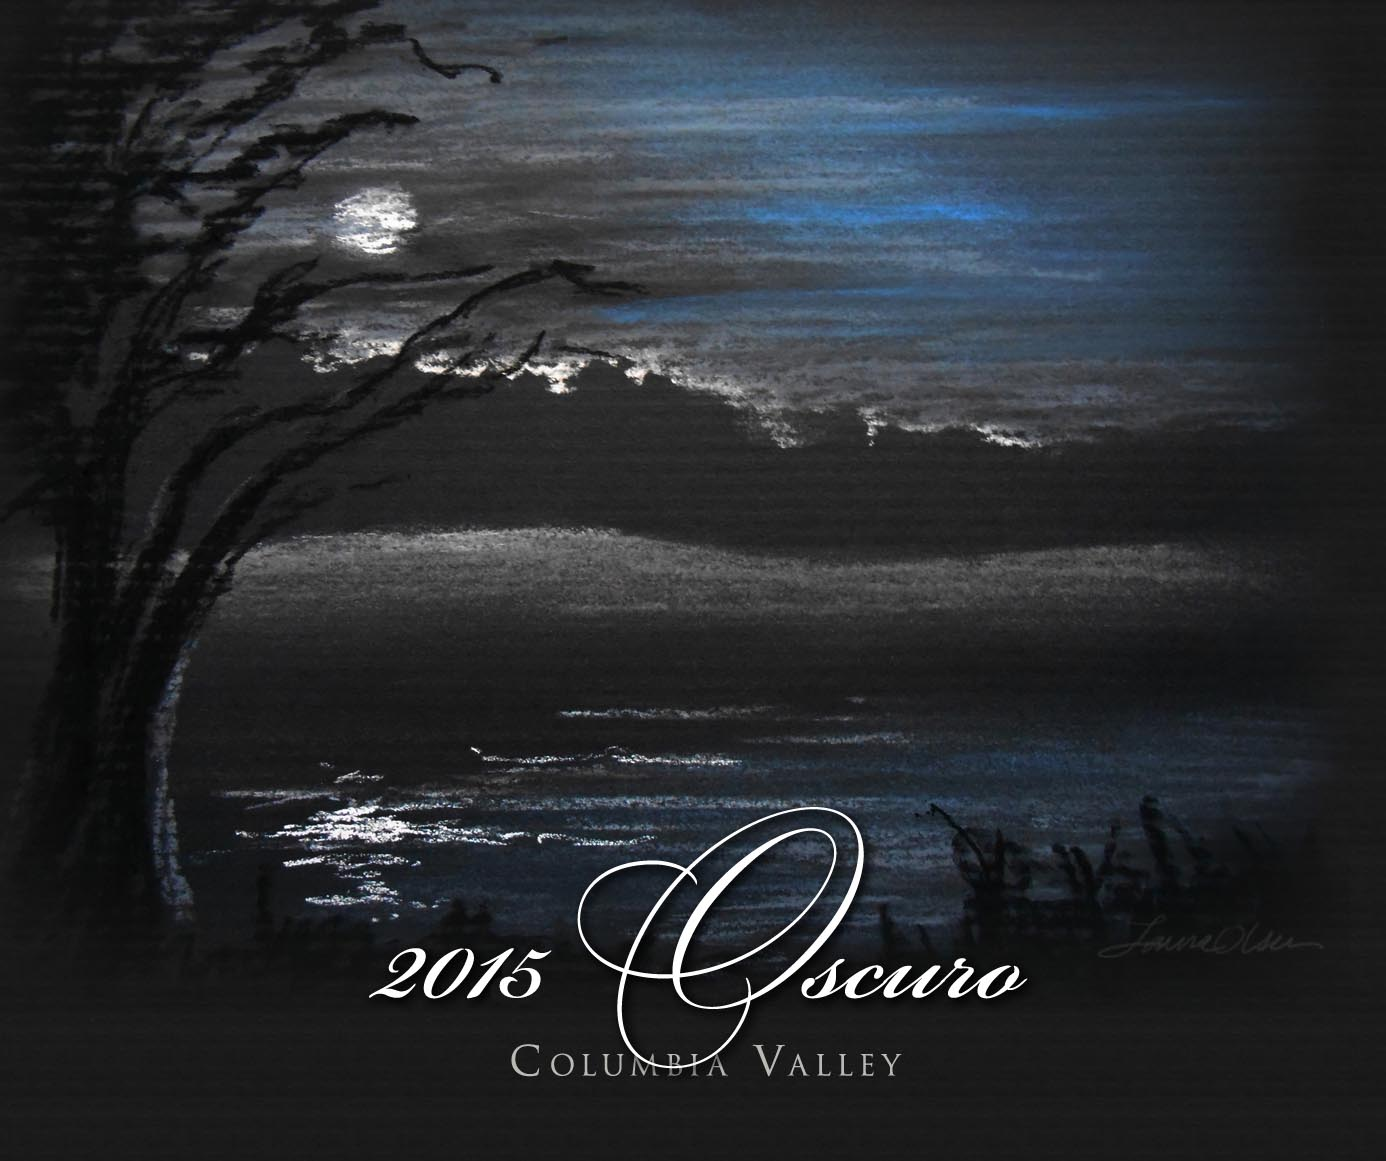 2015 Oscuro Columbia Valley